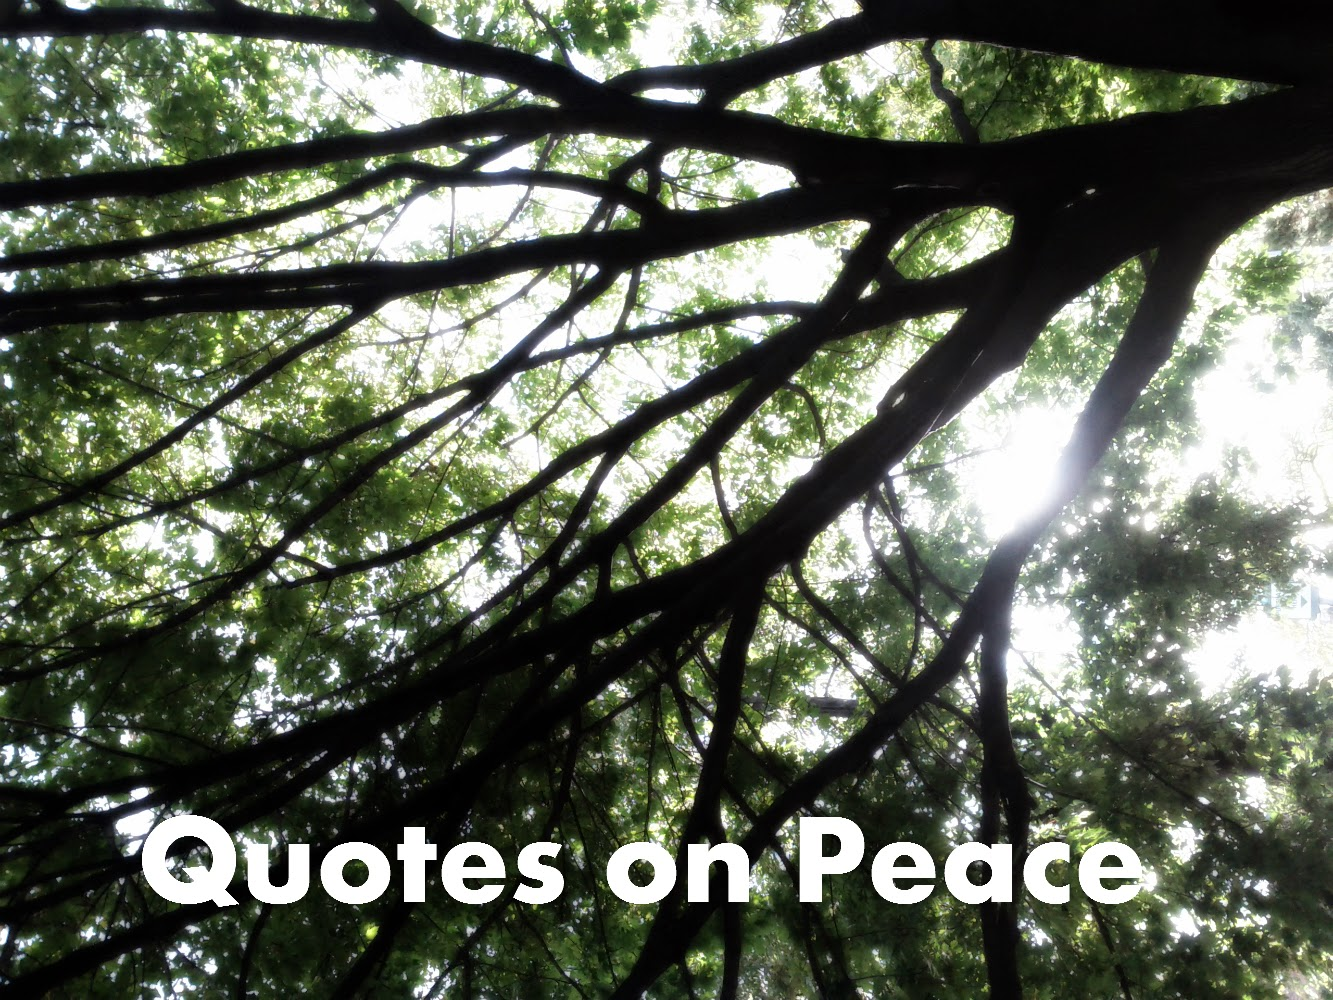 Quotes on Peace